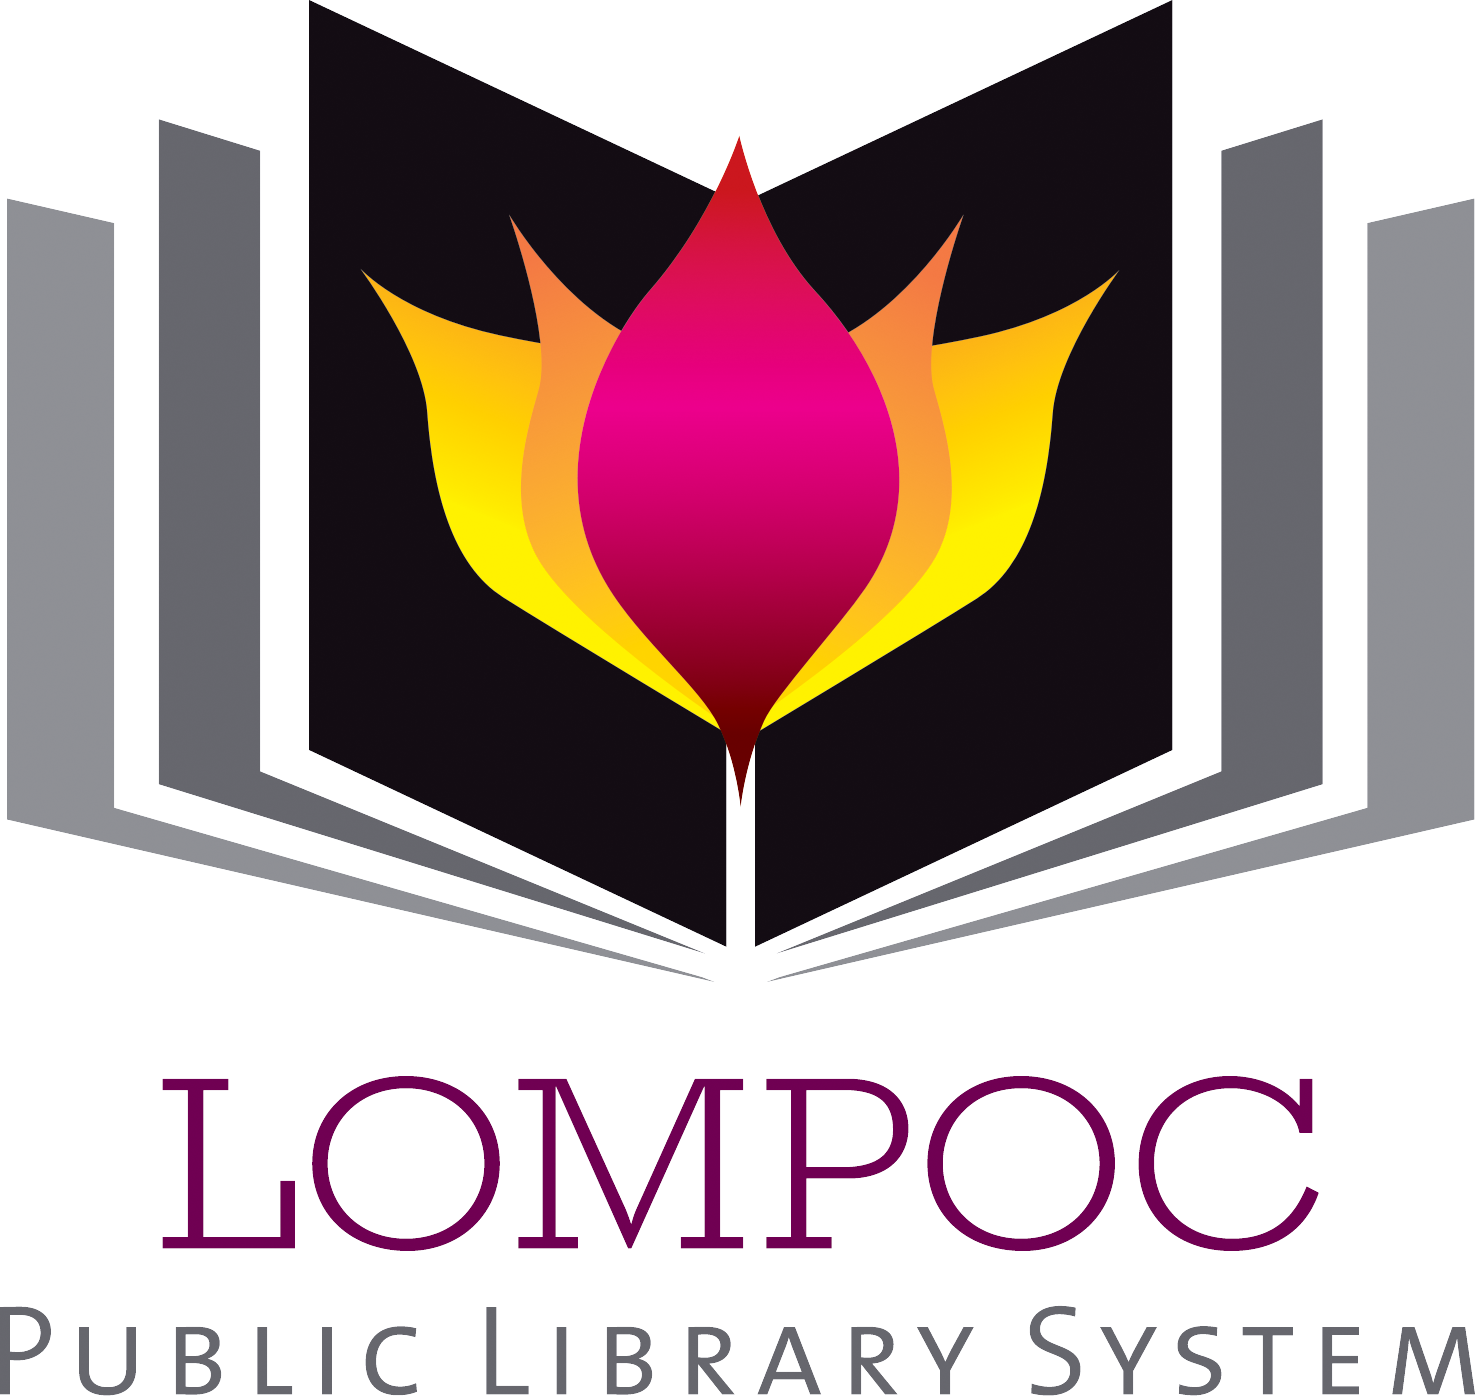 Lompoc Public Library System